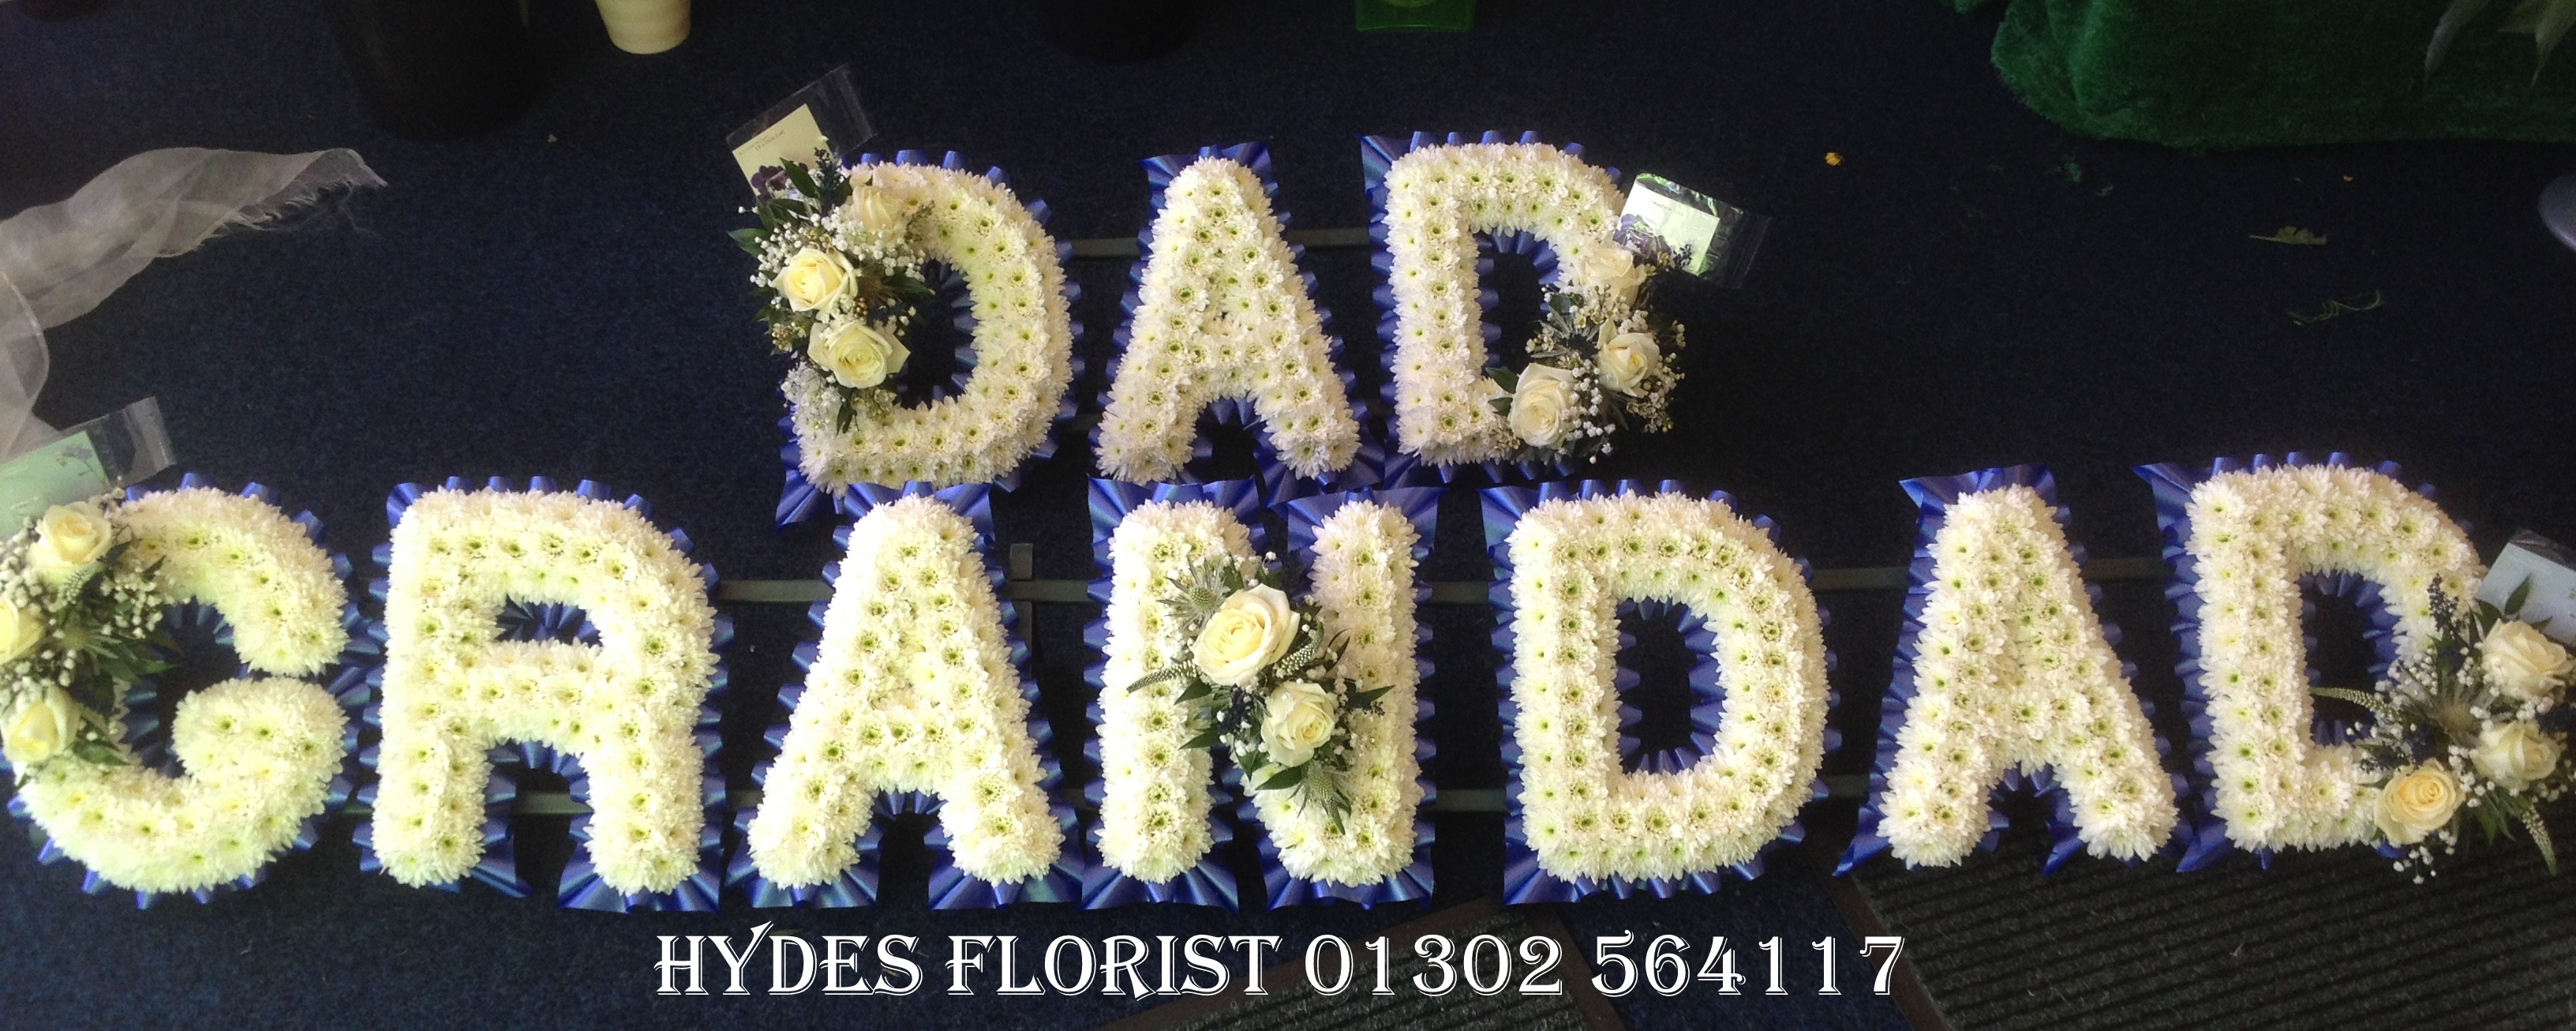 Hydes florist bespoke funeral tributes gallery funeral letters hydes florist doncaster dhlflorist Choice Image